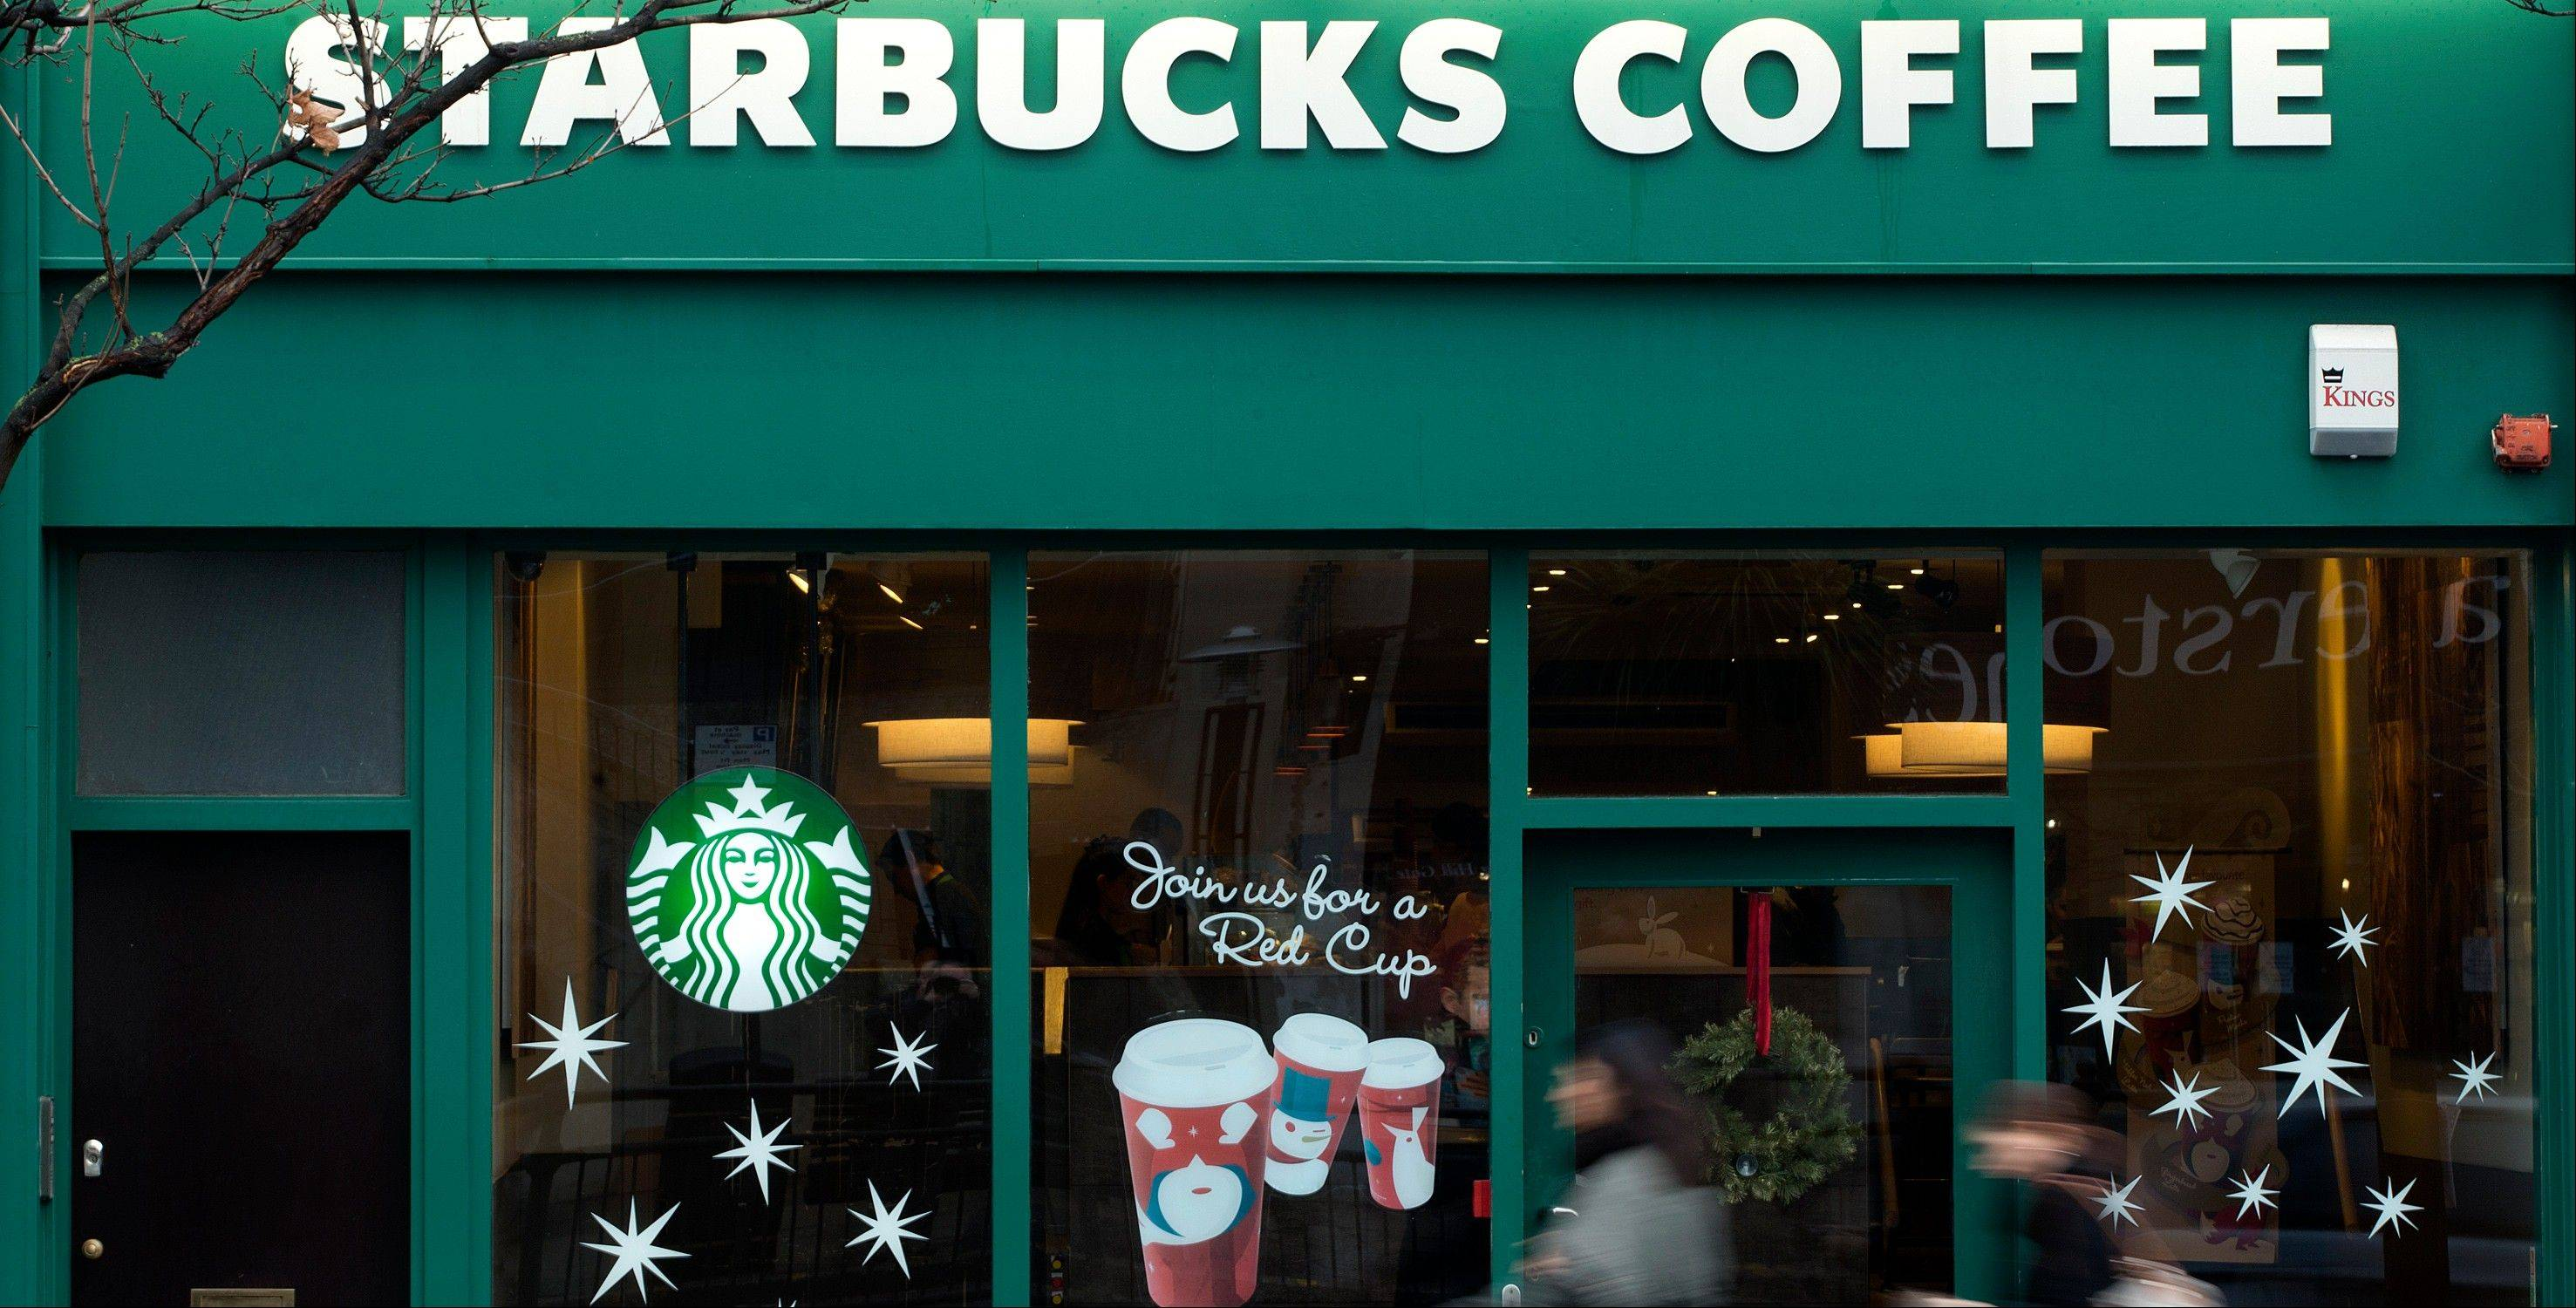 Starbucks bowed to mounting pressure over its tax affairs in Britain and revealed Thursday Dec. 6, 2012 that it would pay about $16 million in each of the next two years.